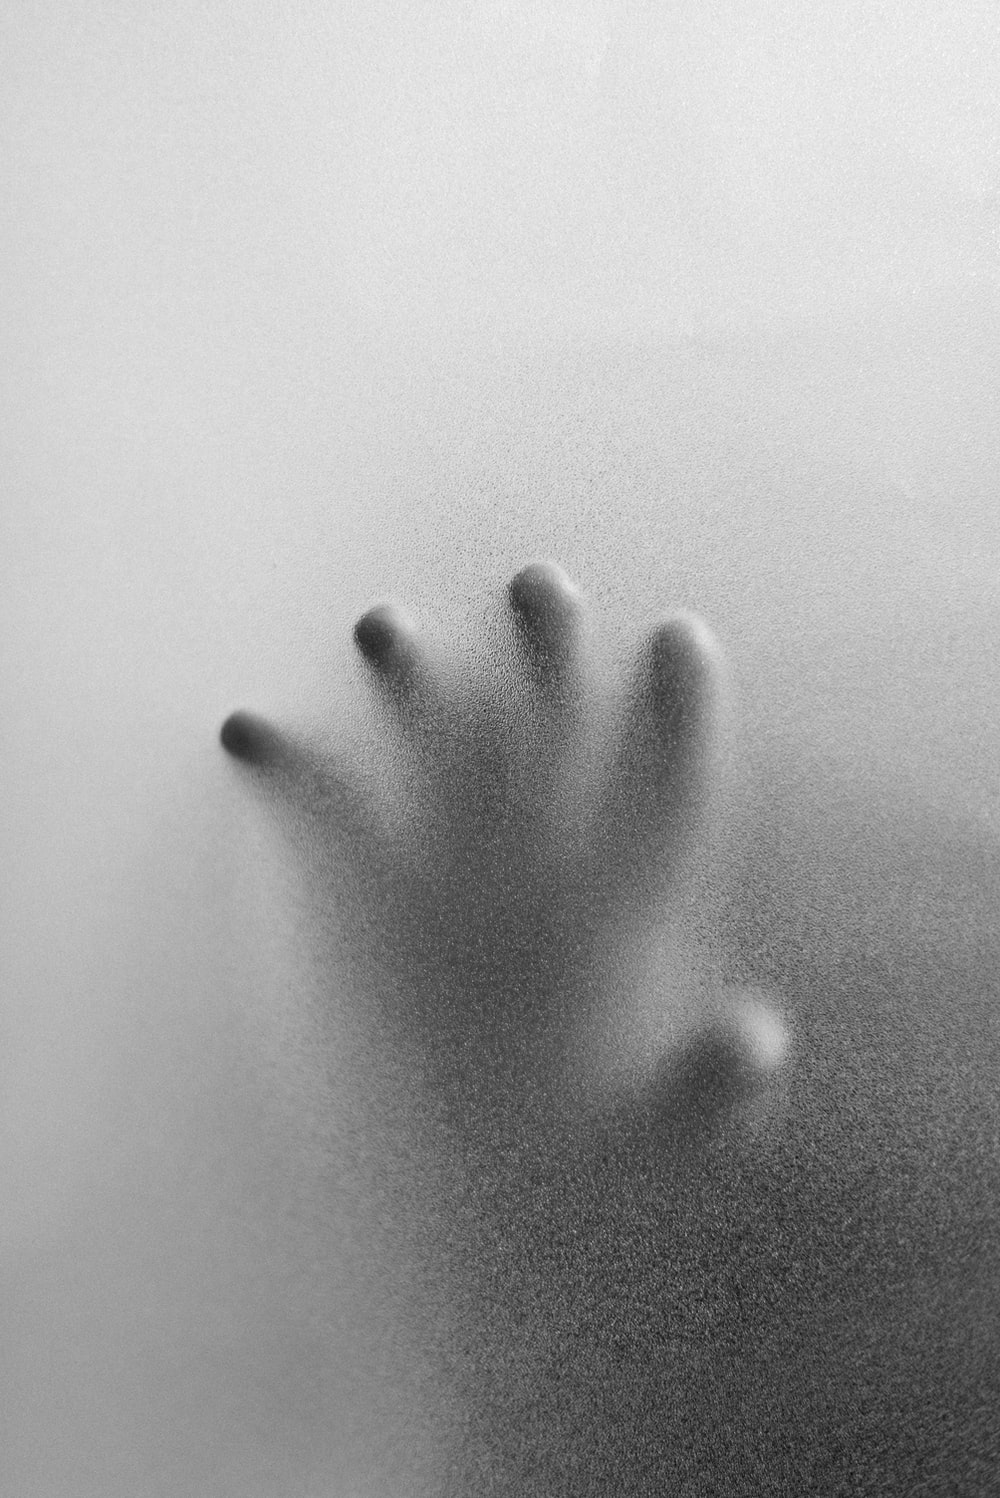 grayscale photo of persons right hand